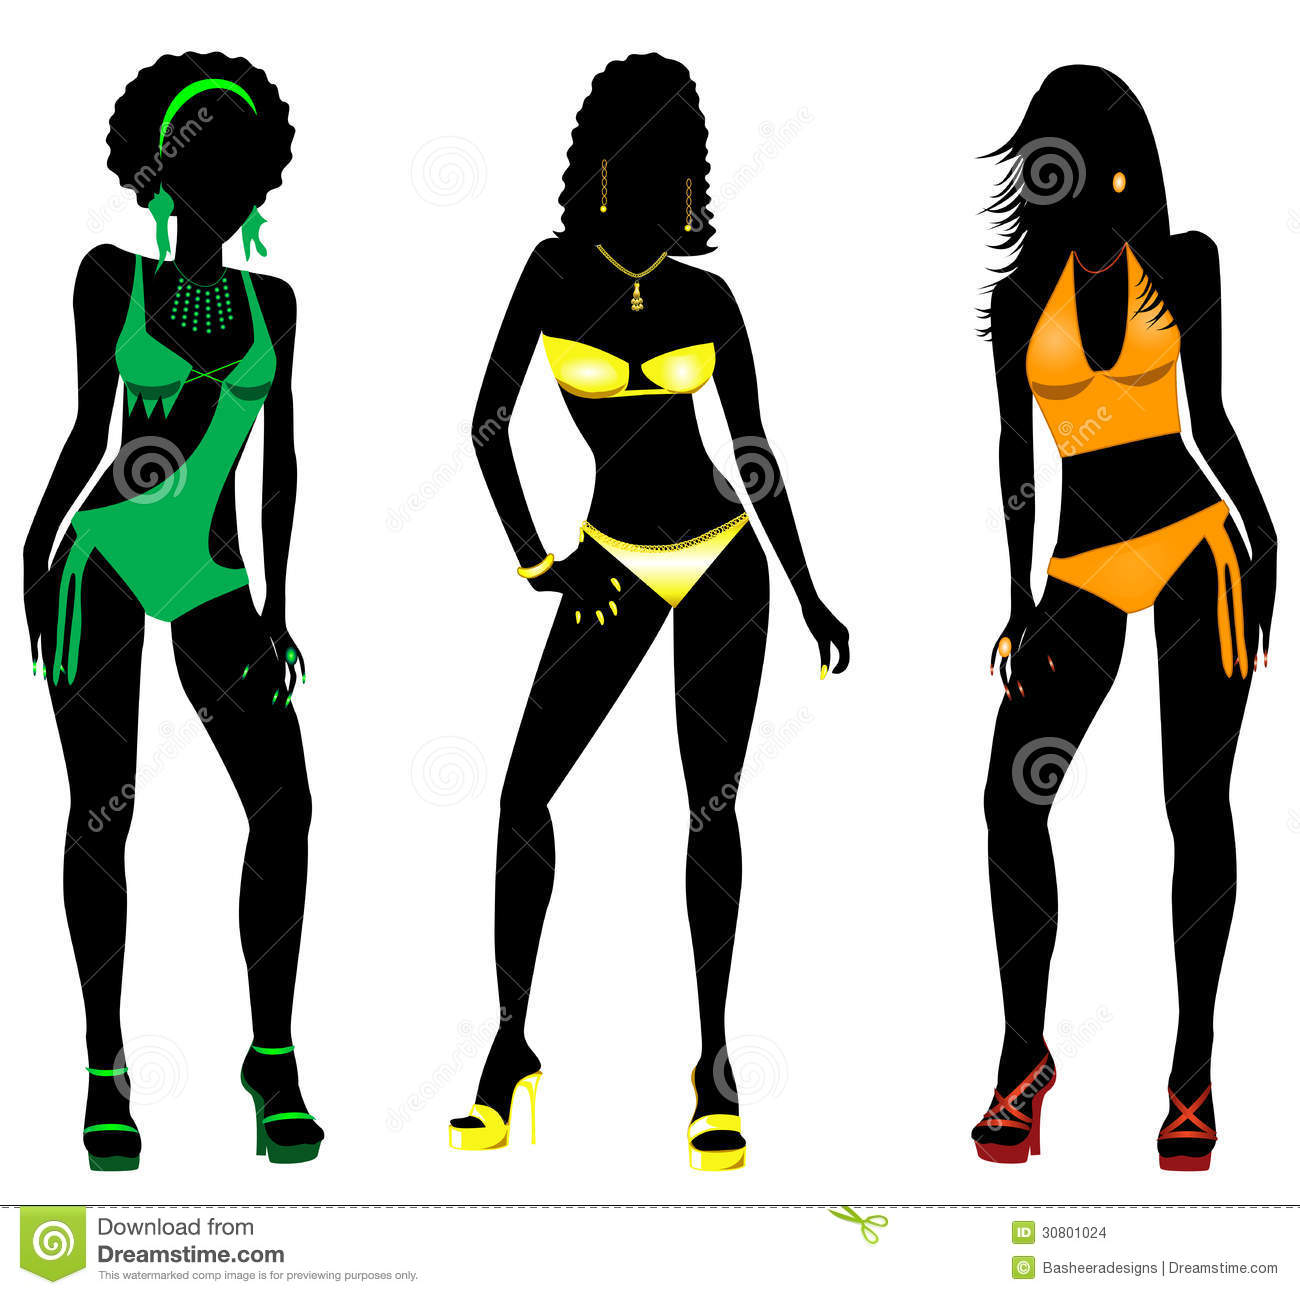 Swimsuit Silhouettes 2 Stock Images - Image: 30801024